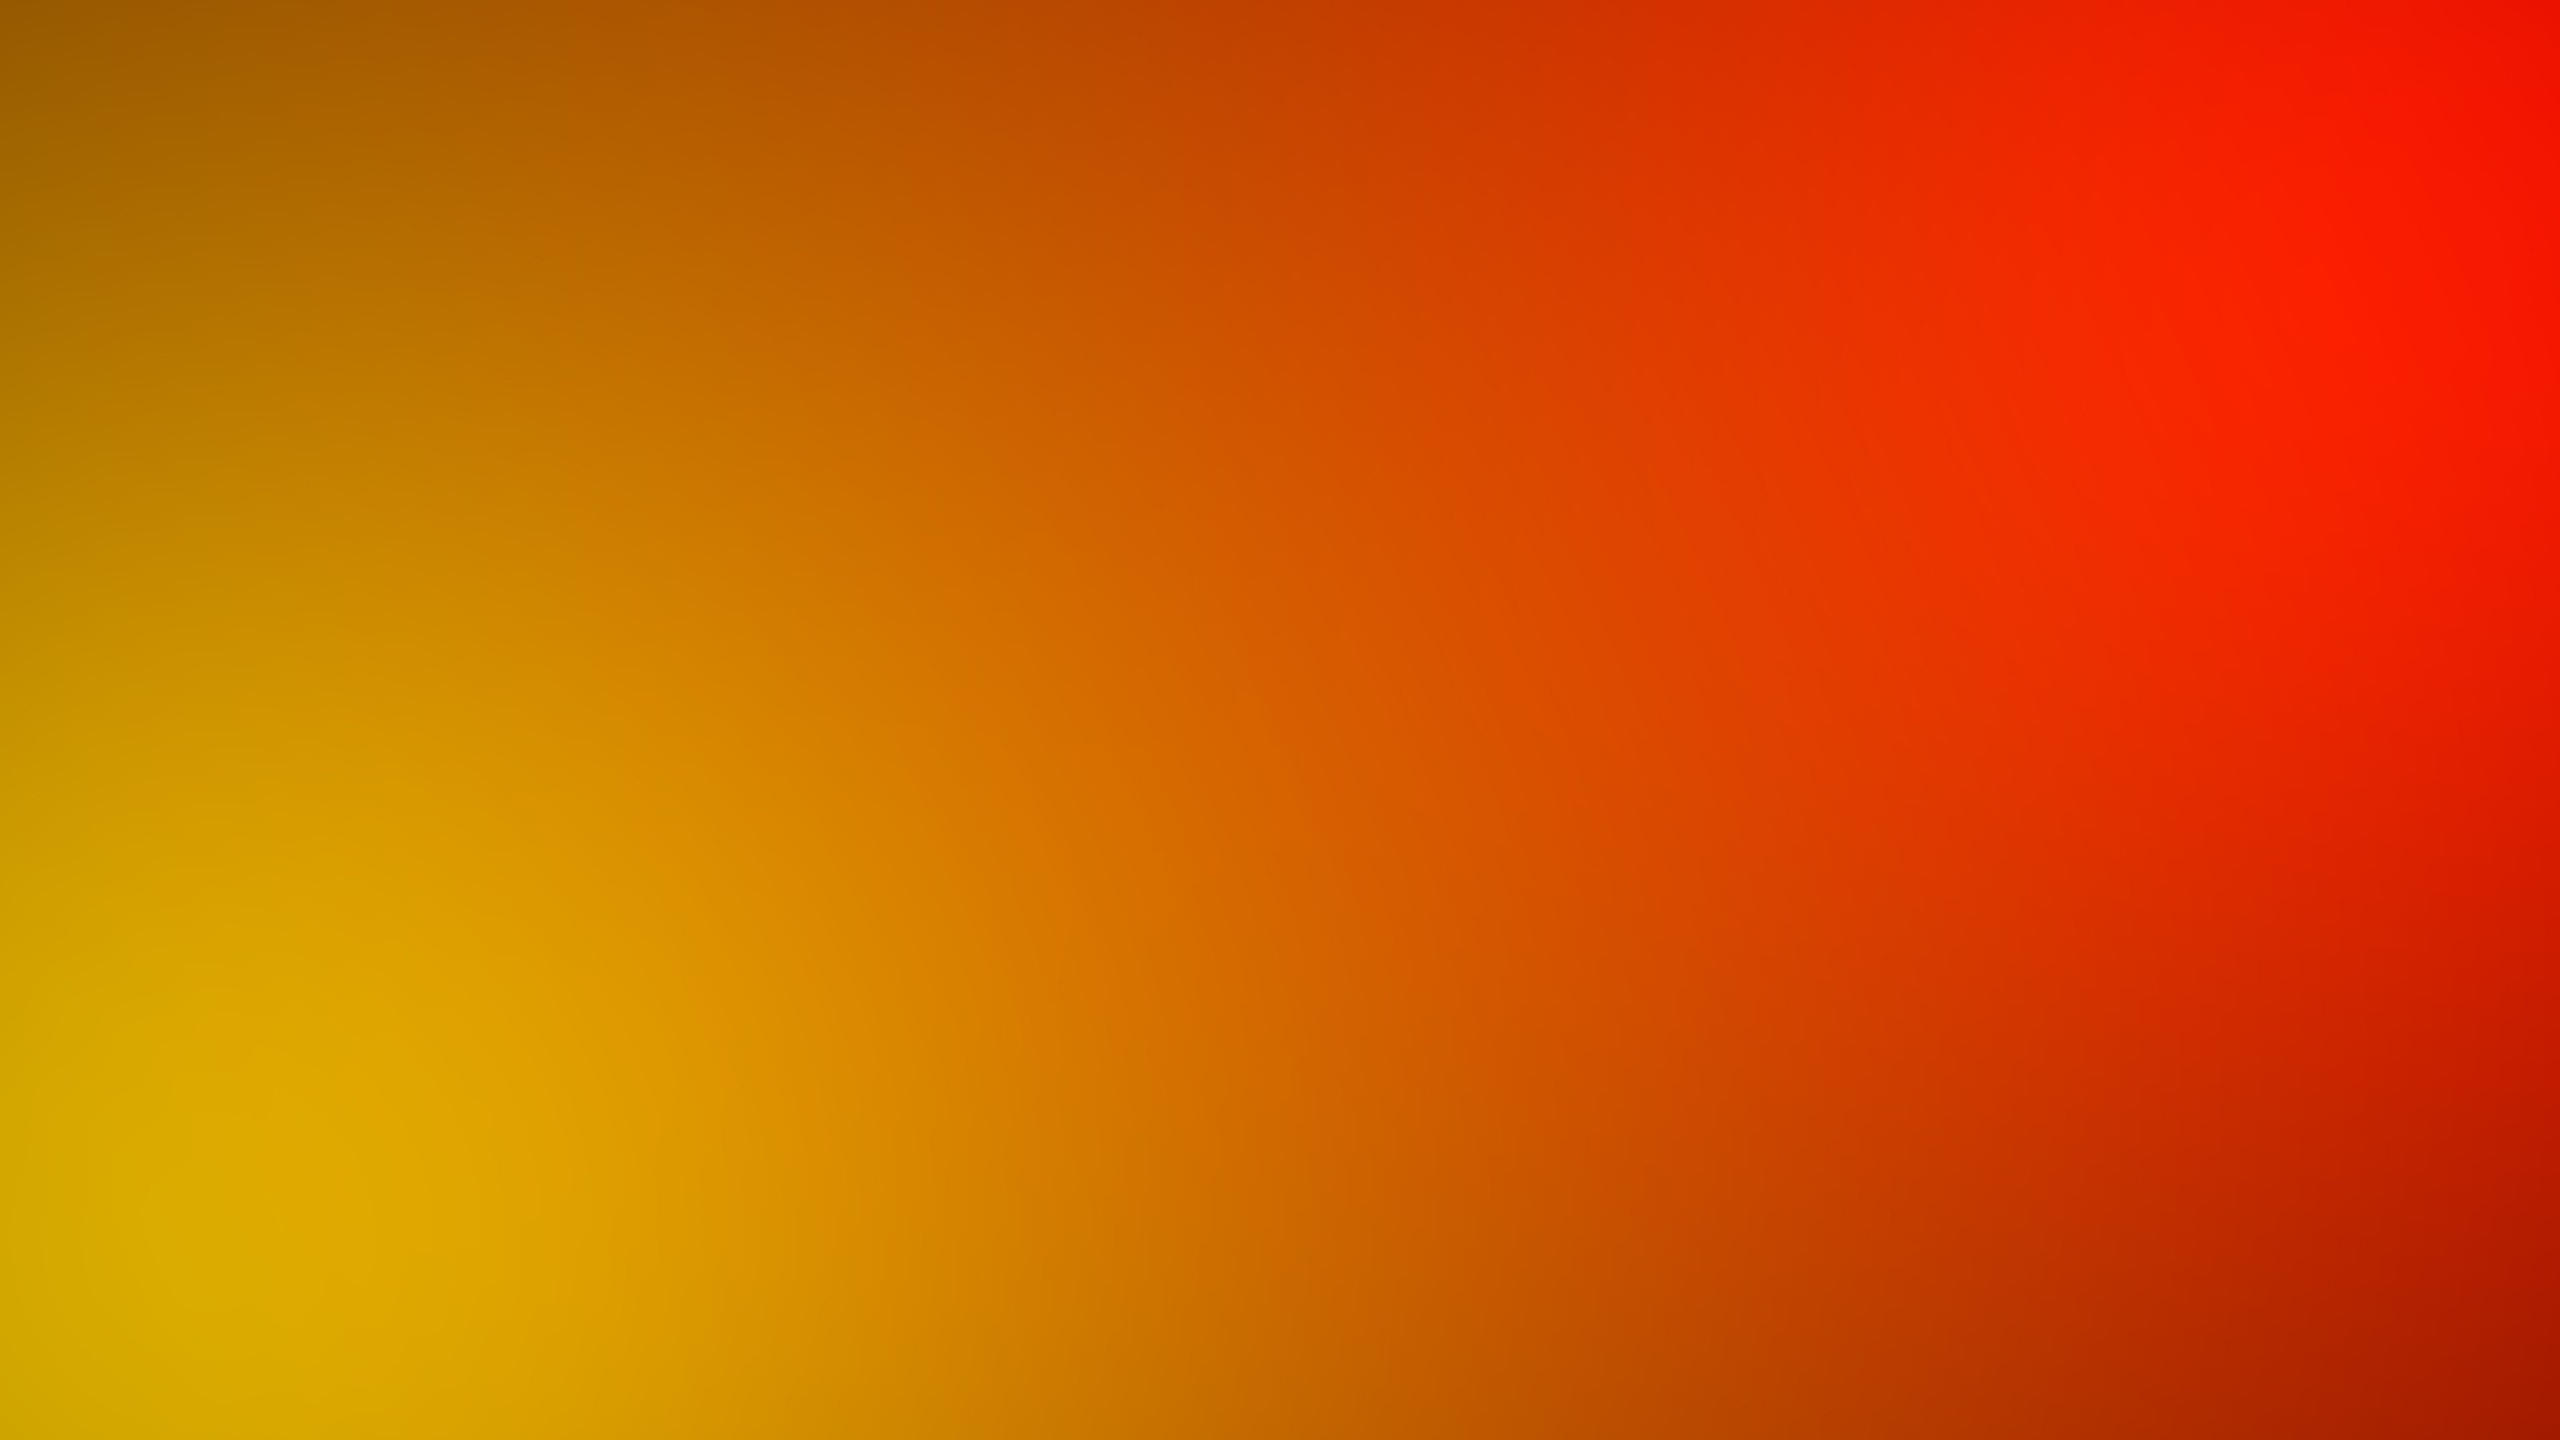 Download Color Orange Wallpaper Gallery